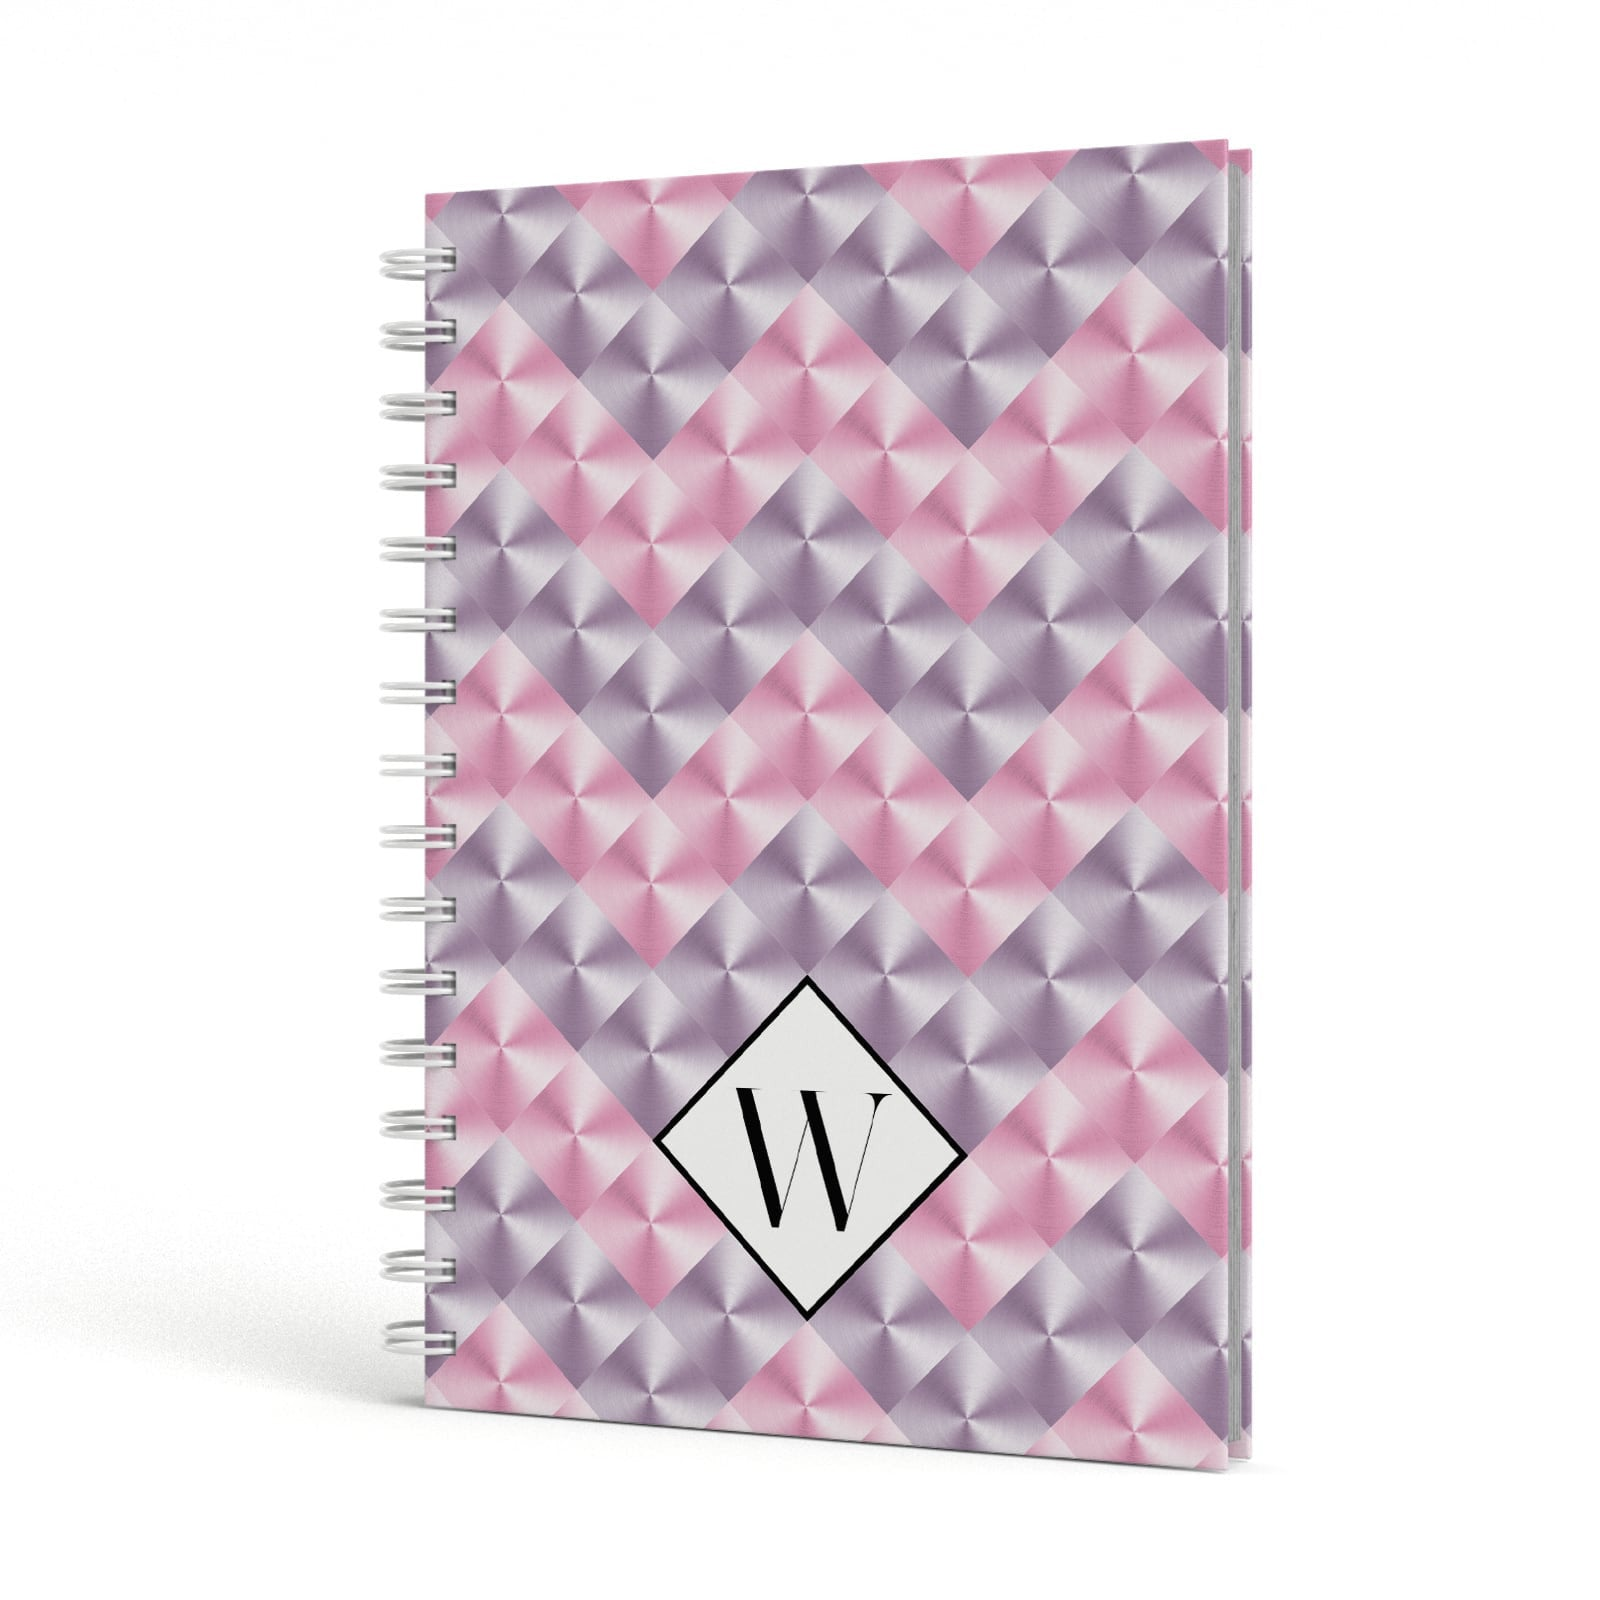 Personalised Mother Of Pearl Monogram Letter A5 Hardcover Notebook Side View